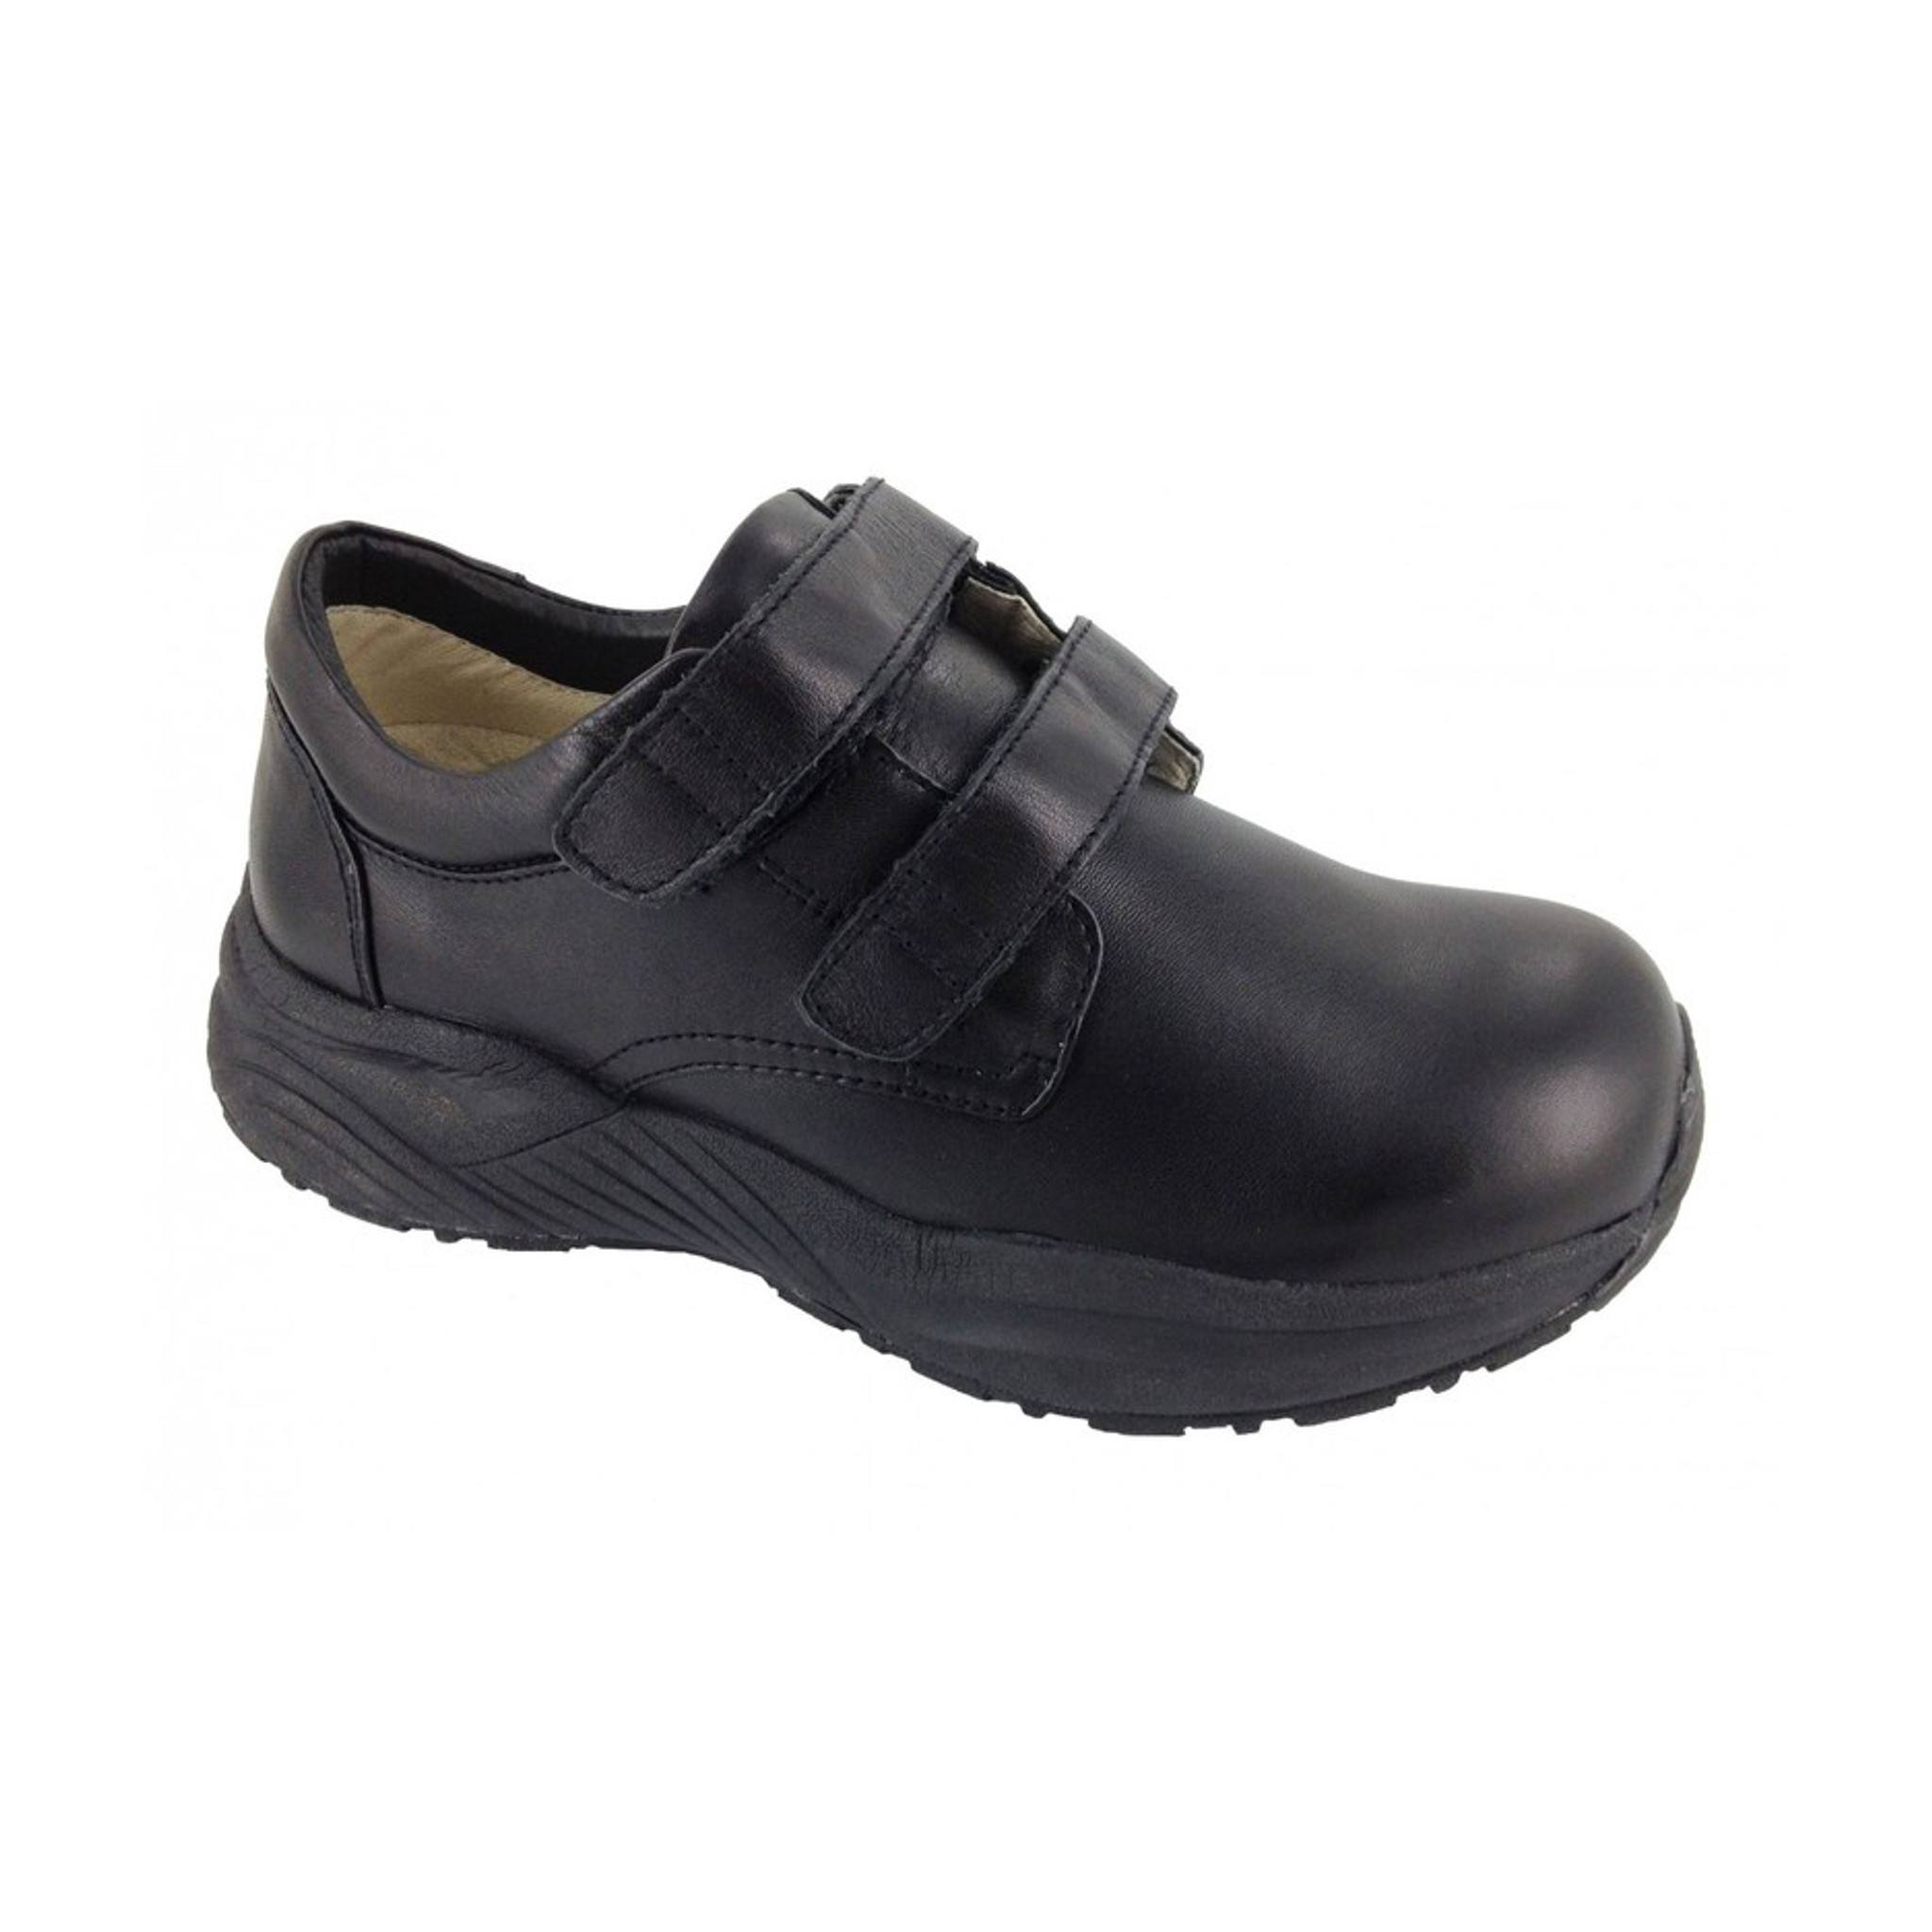 Black Touch Closure Orthopedic Shoes